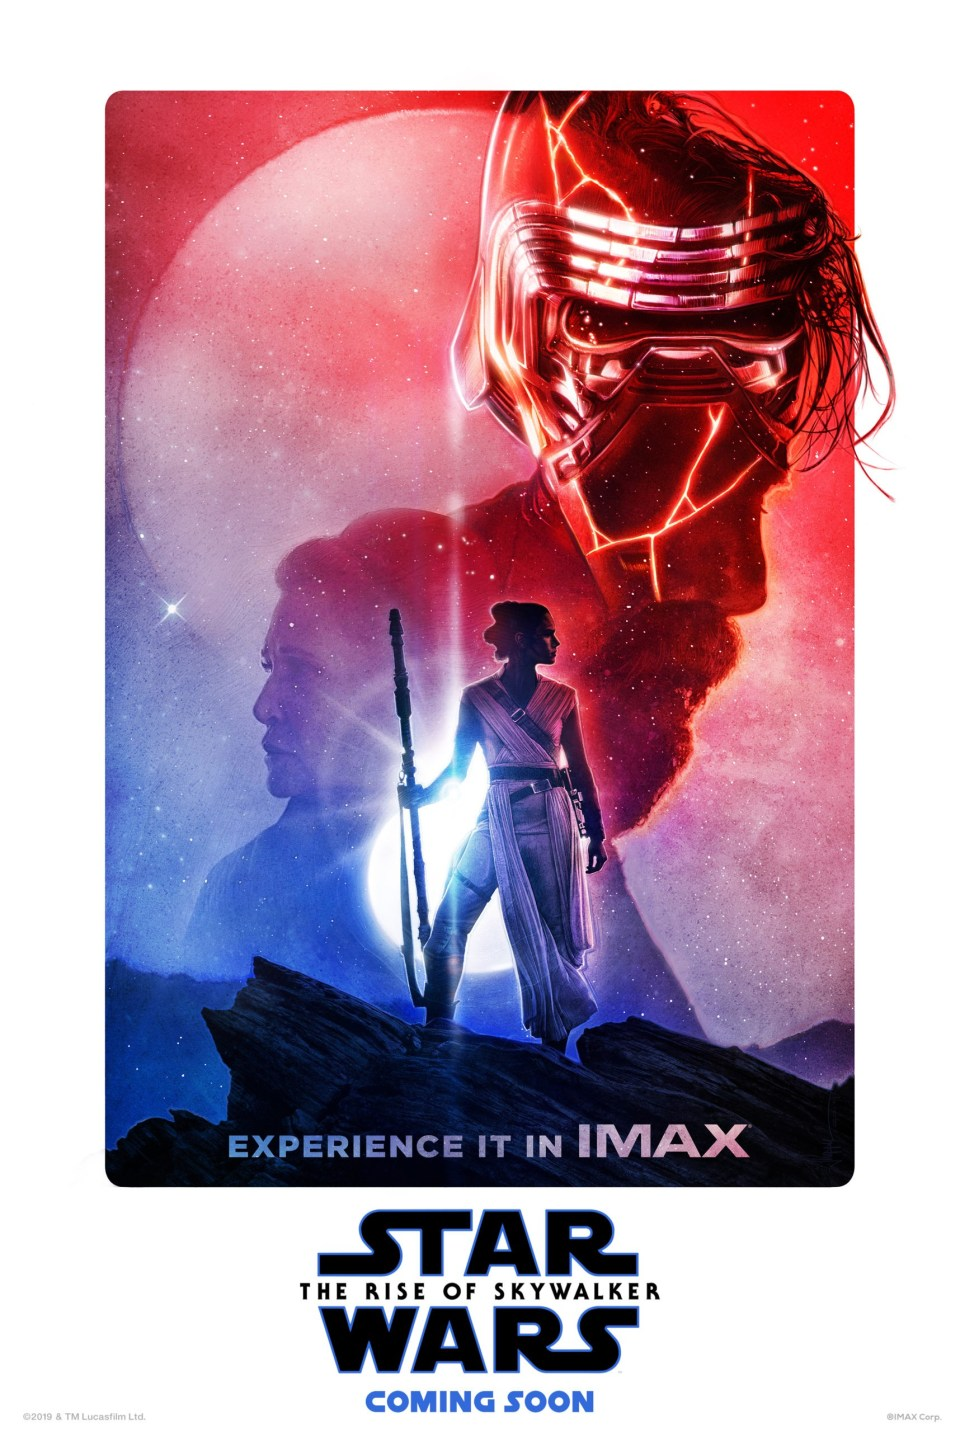 Here is Star Wars: The Rise Of Skywalker's IMAX poster